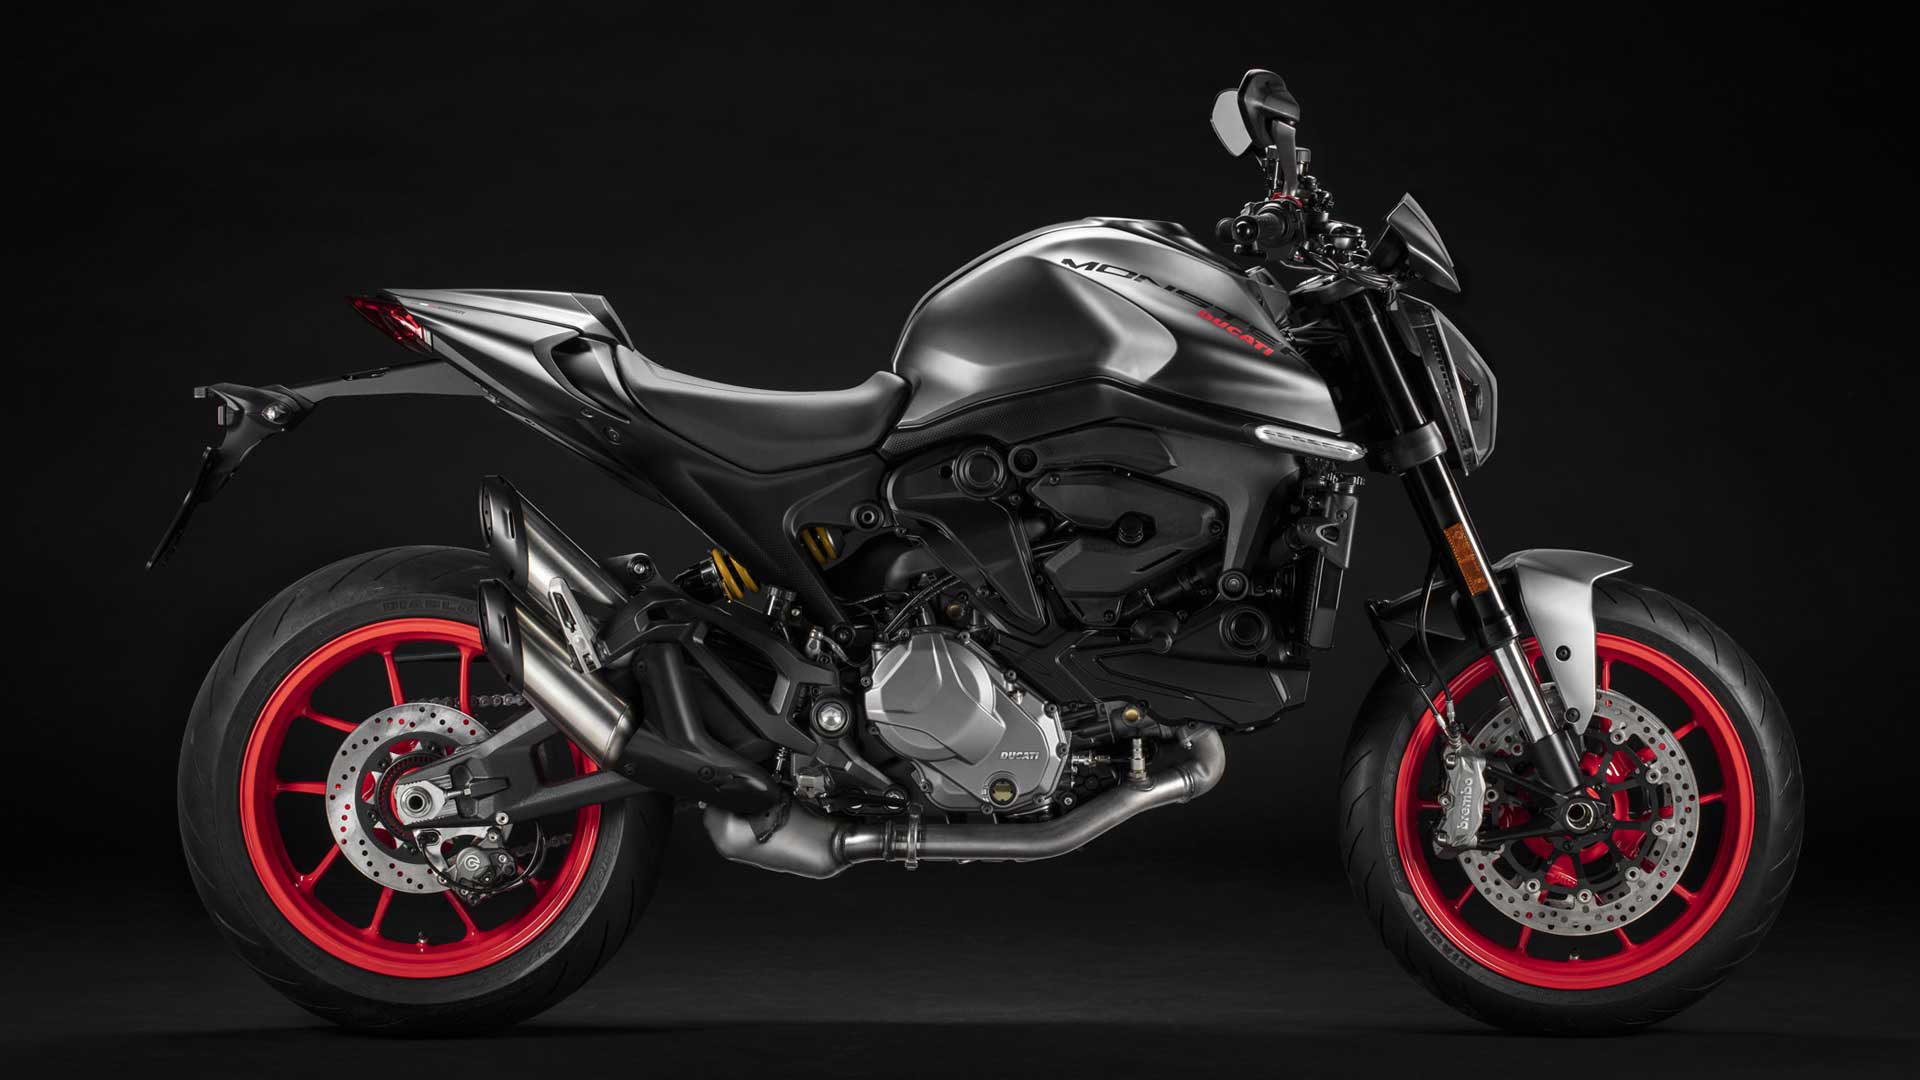 2021 Ducati Monster Plus for sale at Ducati Preston, Lancashire, Scotland